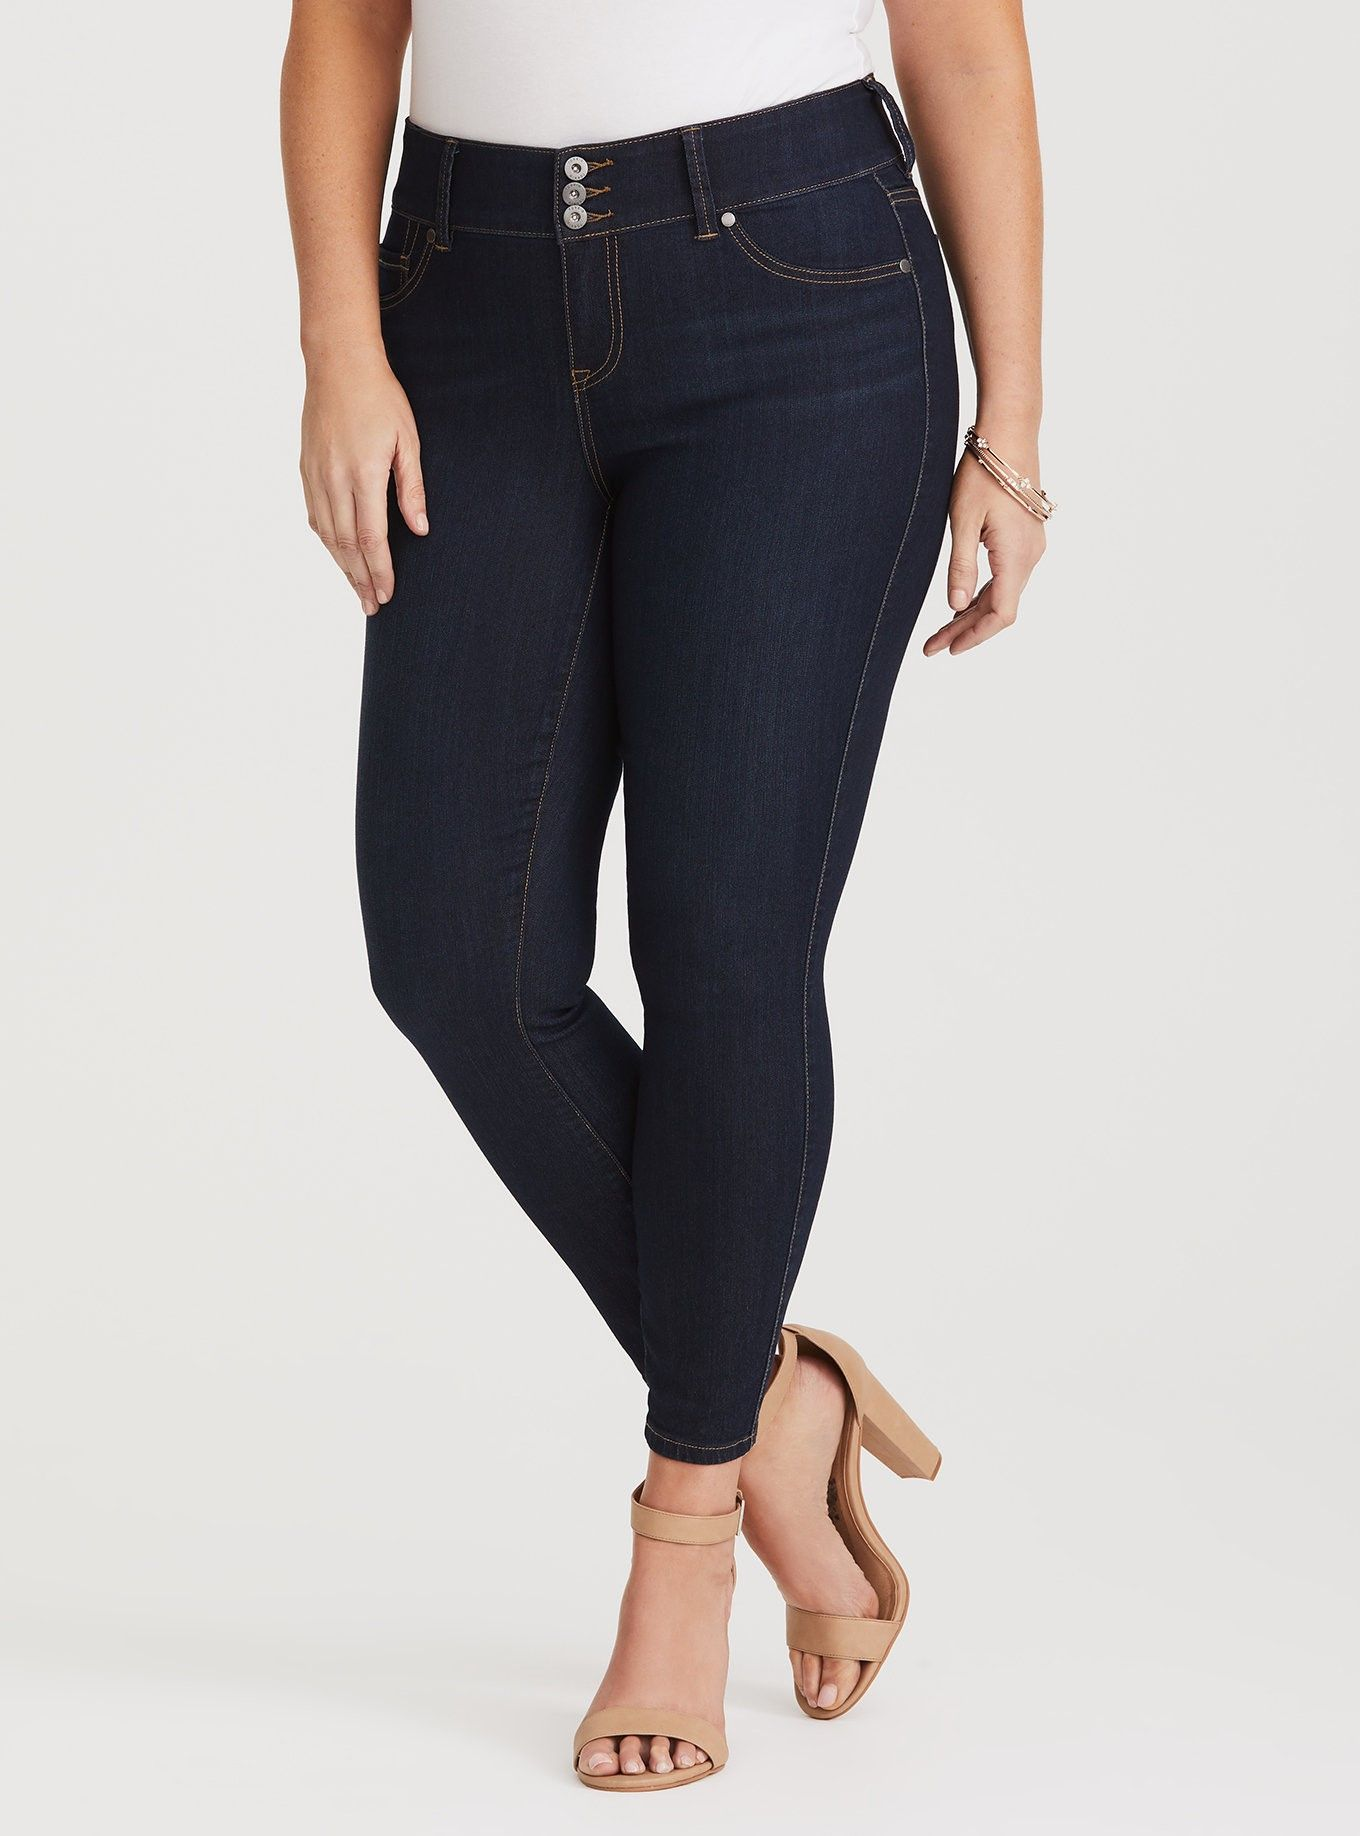 560bf6ea900 Premium Stretch Jegging - Dark Wash - Our  1 rated jean and skinniest fit